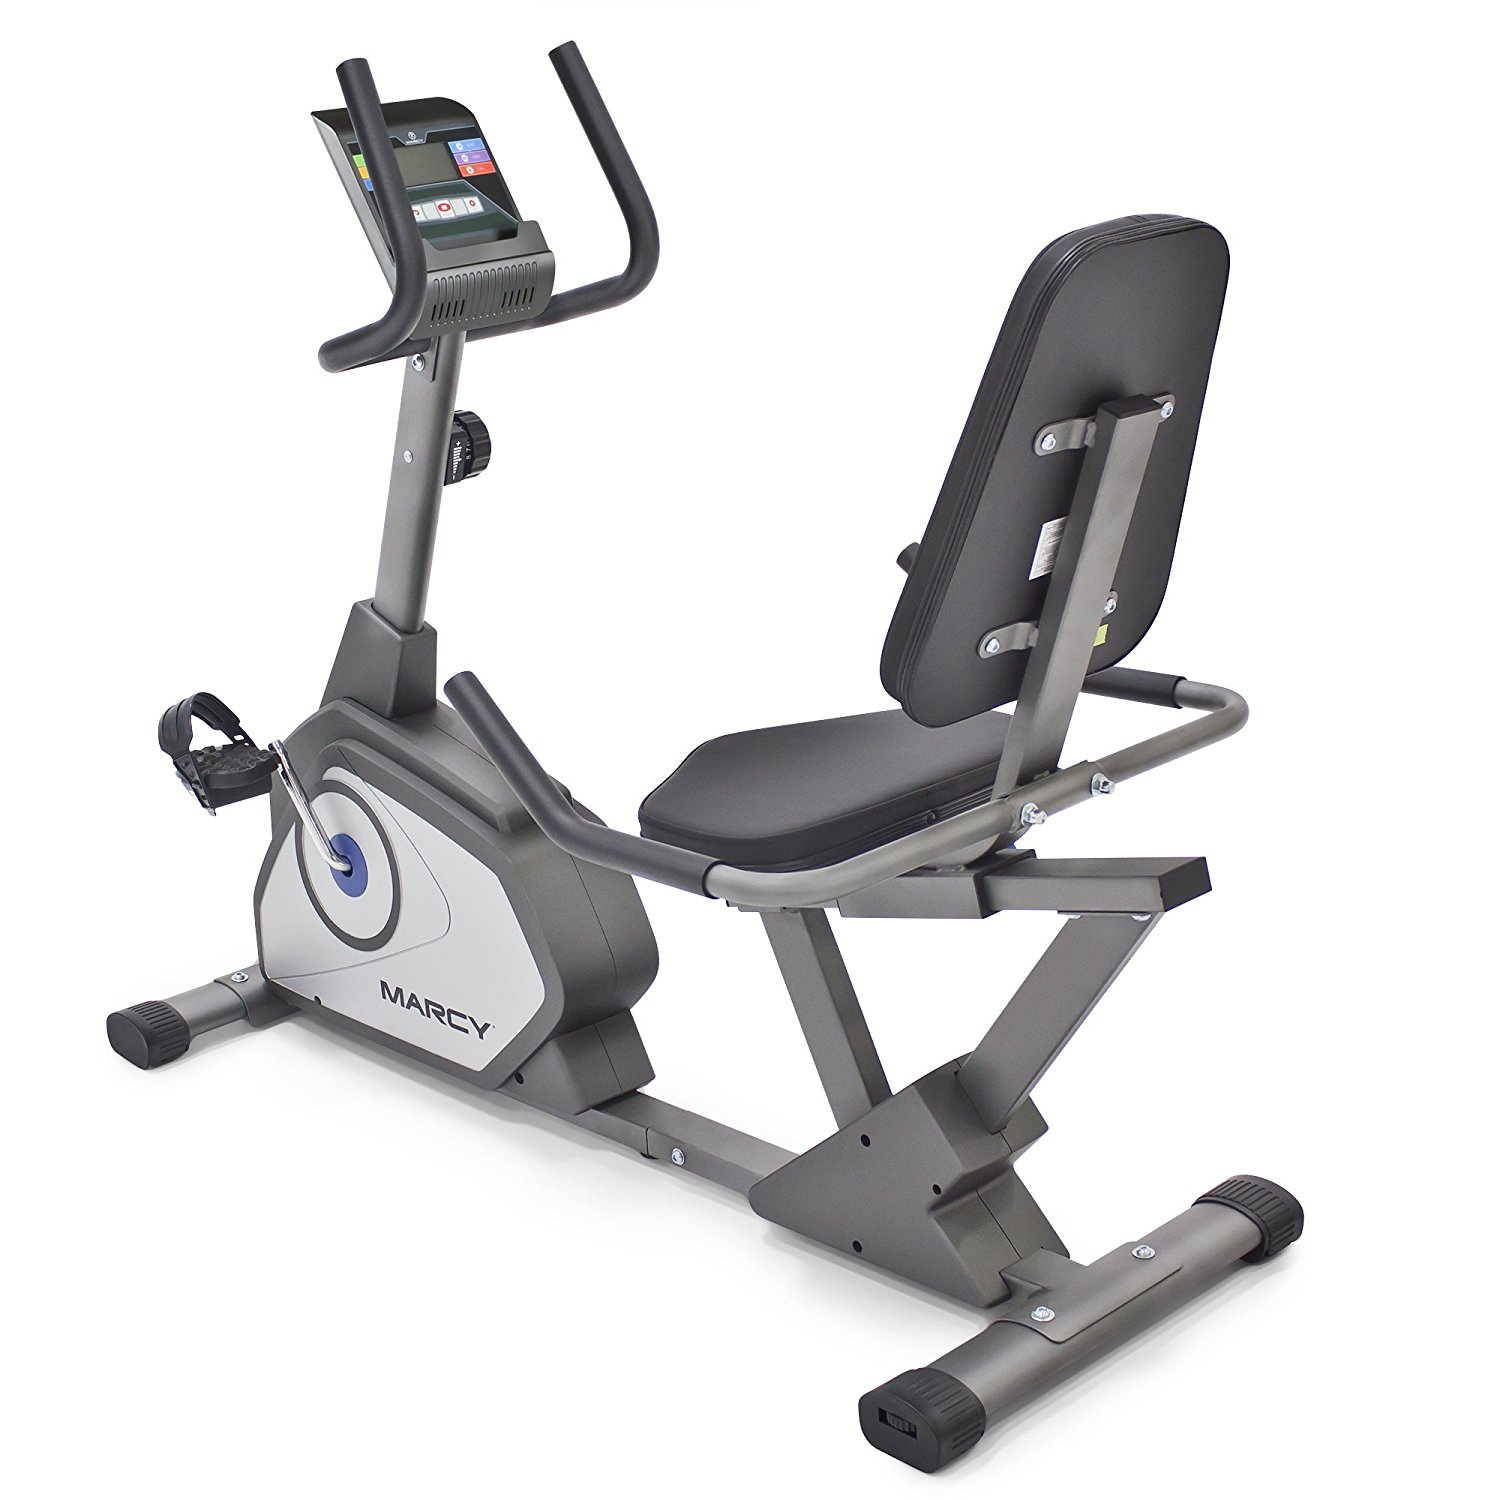 dc8e267bbde Get Quotations · Marcy Magnetic Recumbent Exercise Bike with 8 Resistance  Levels NS-40502R